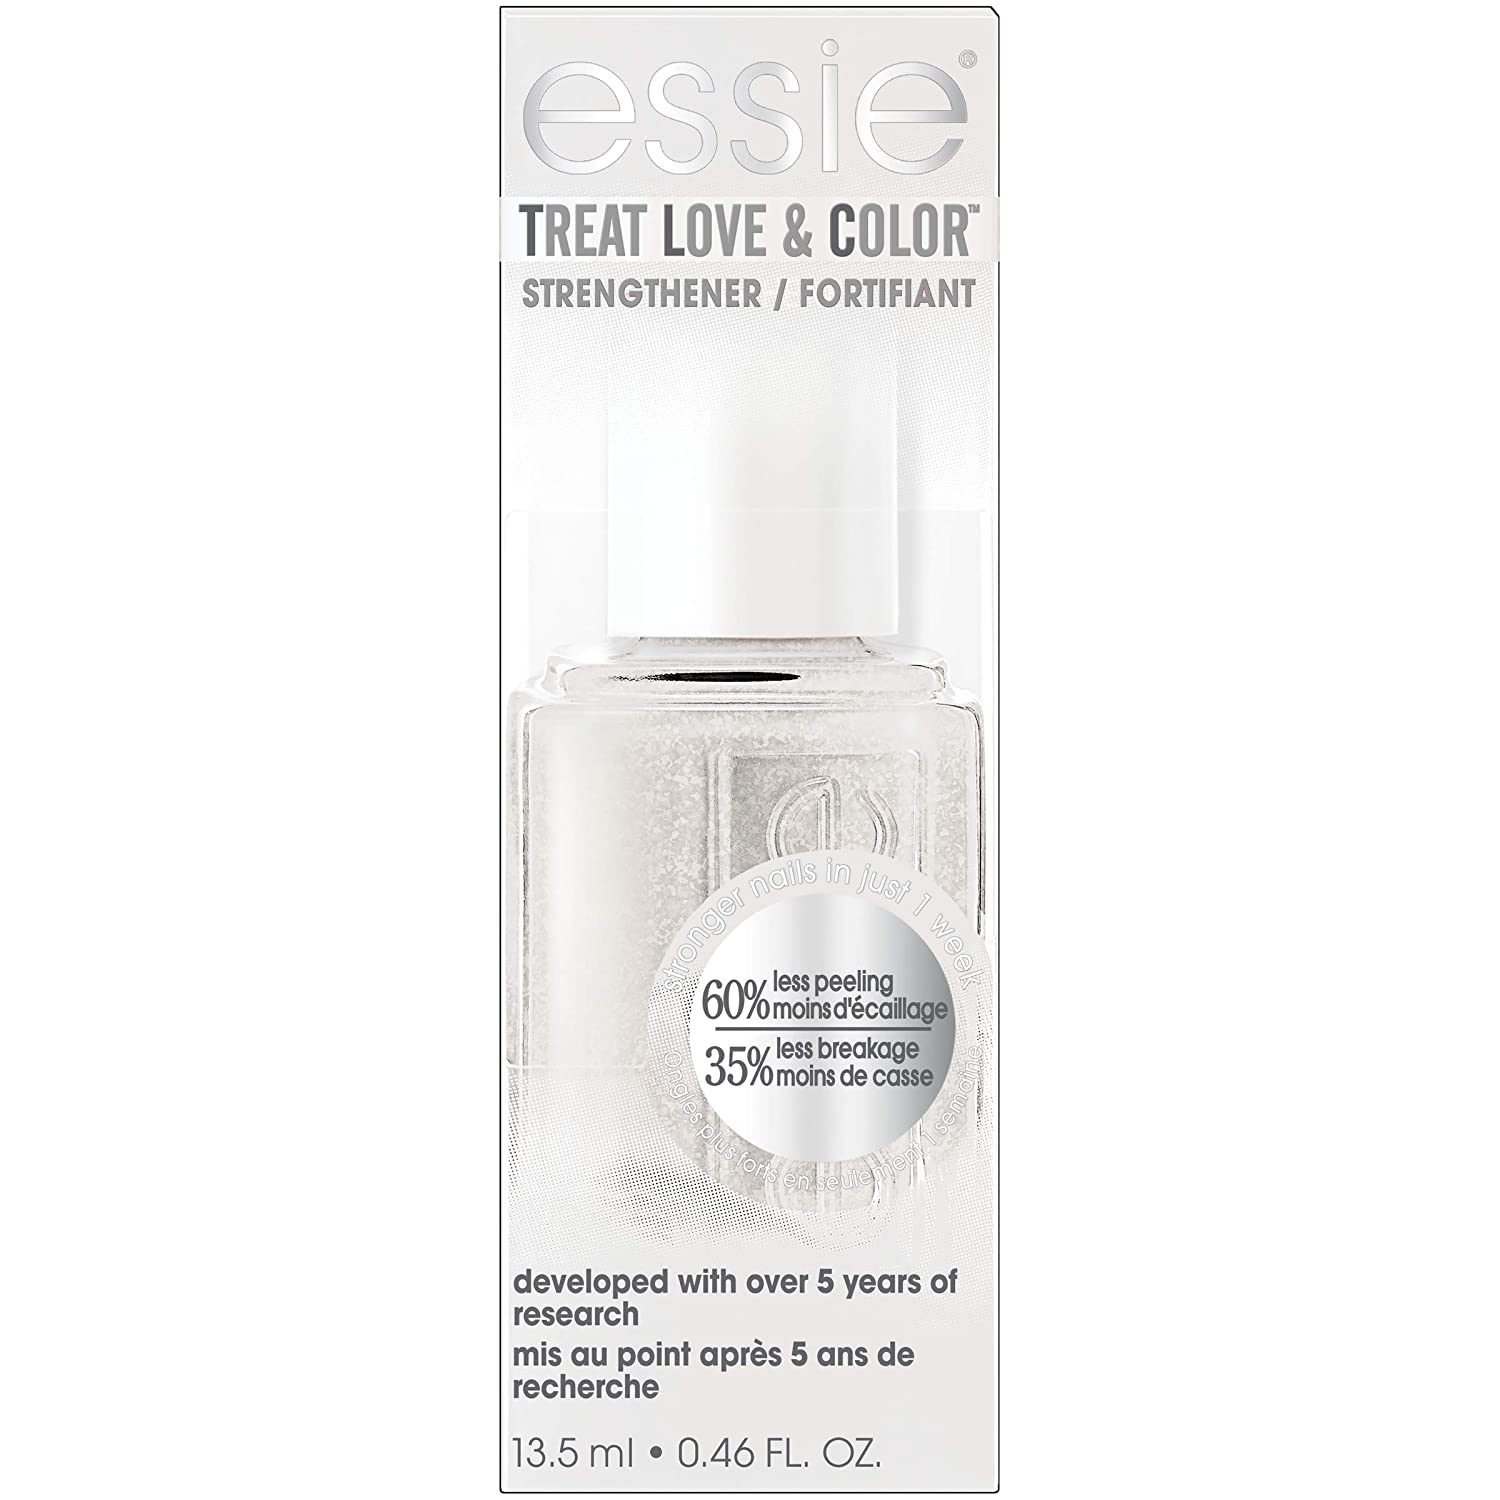 essie Treat Love & Color Nail Polish For Normal to Dry/Brittle Nails, In The Balance, 0.46 fl. oz.